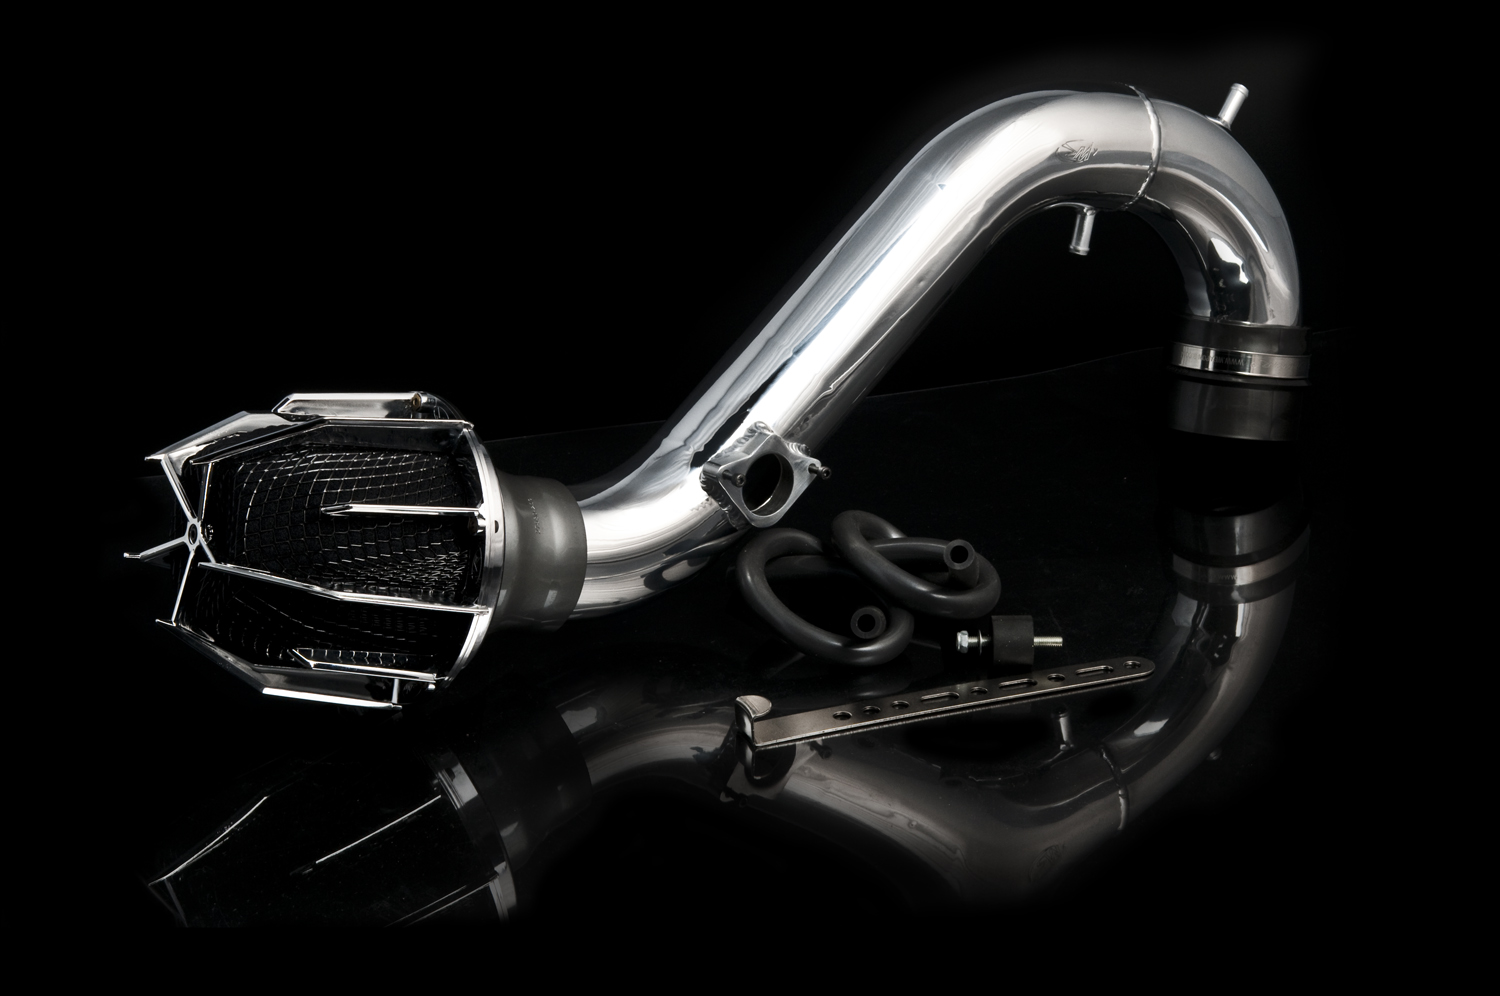 Subaru Impreza / Forester  2.2l & 2.5l 2005-2007 Weapon-R Dragon Air Intake